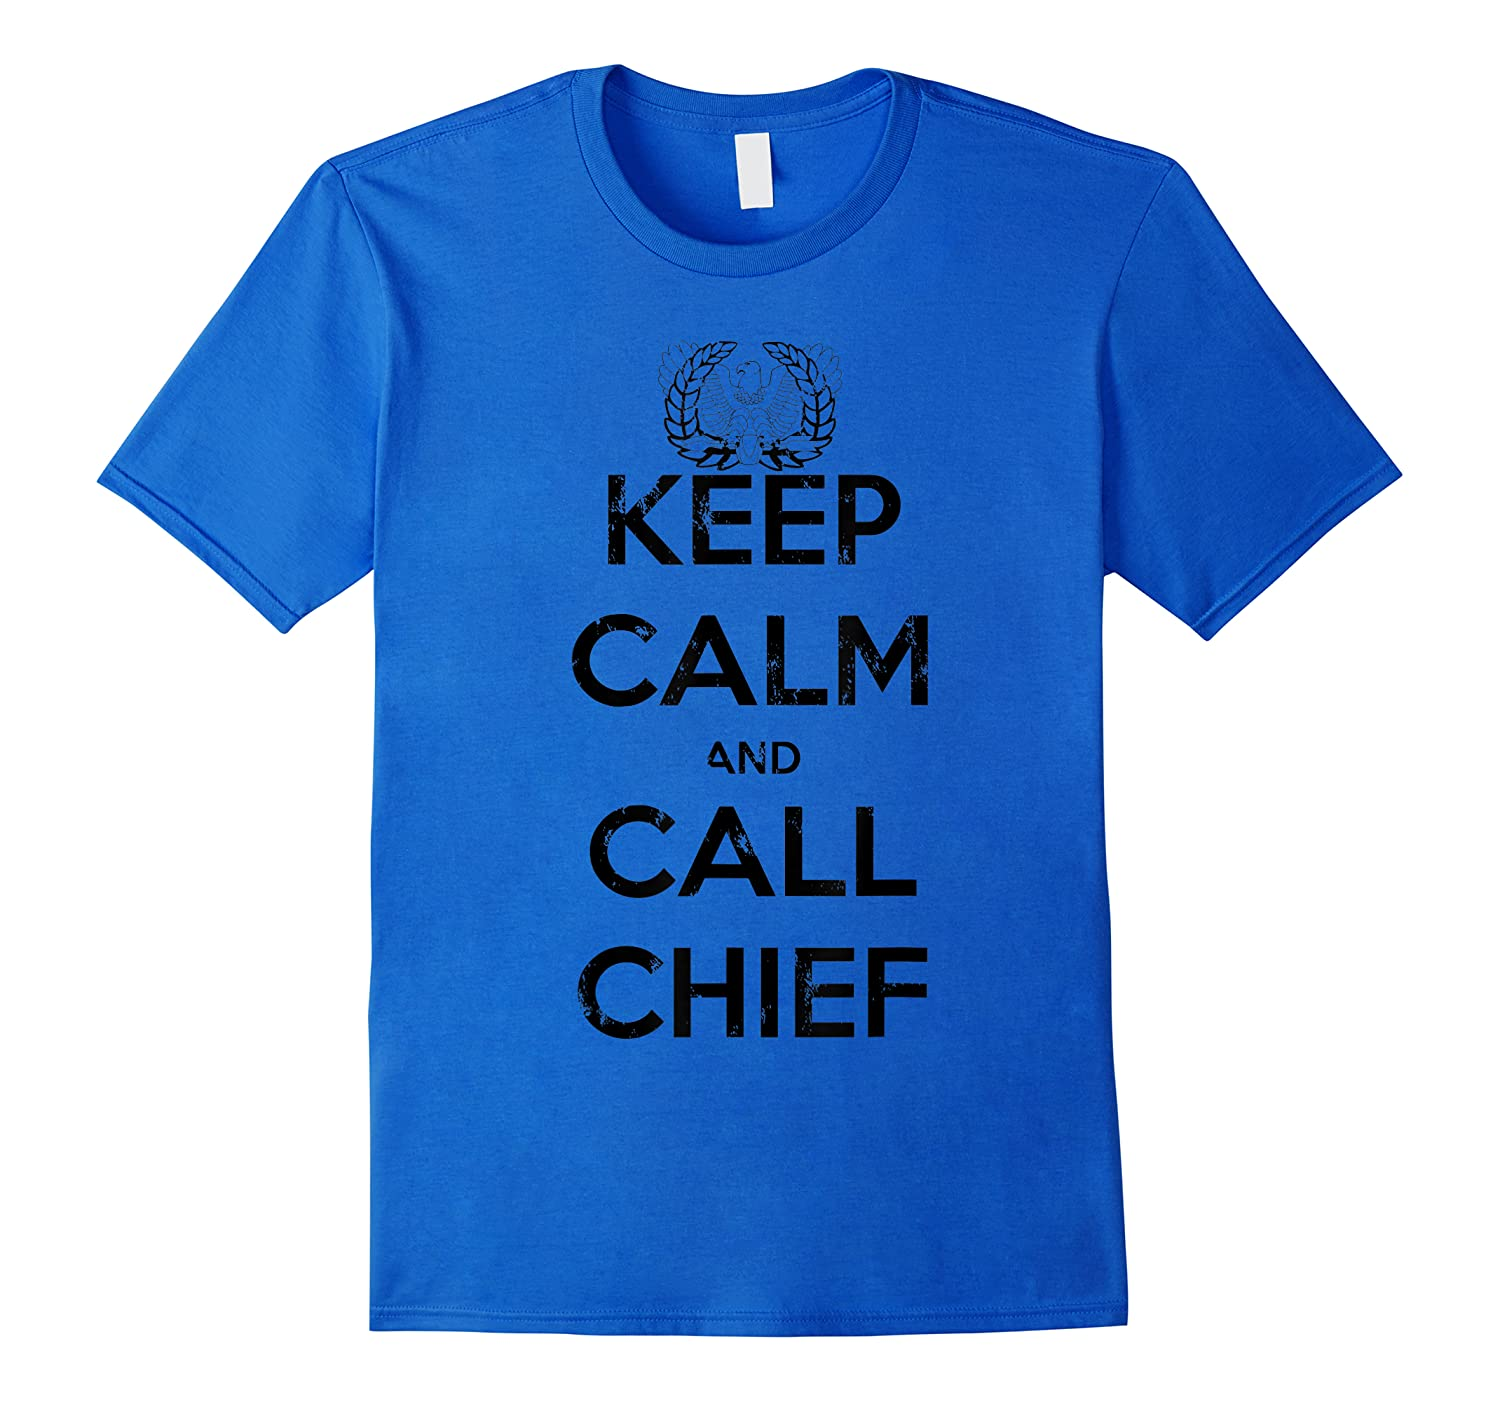 And Call Chief Warrant Officer Corps Eagle Rising Shirts